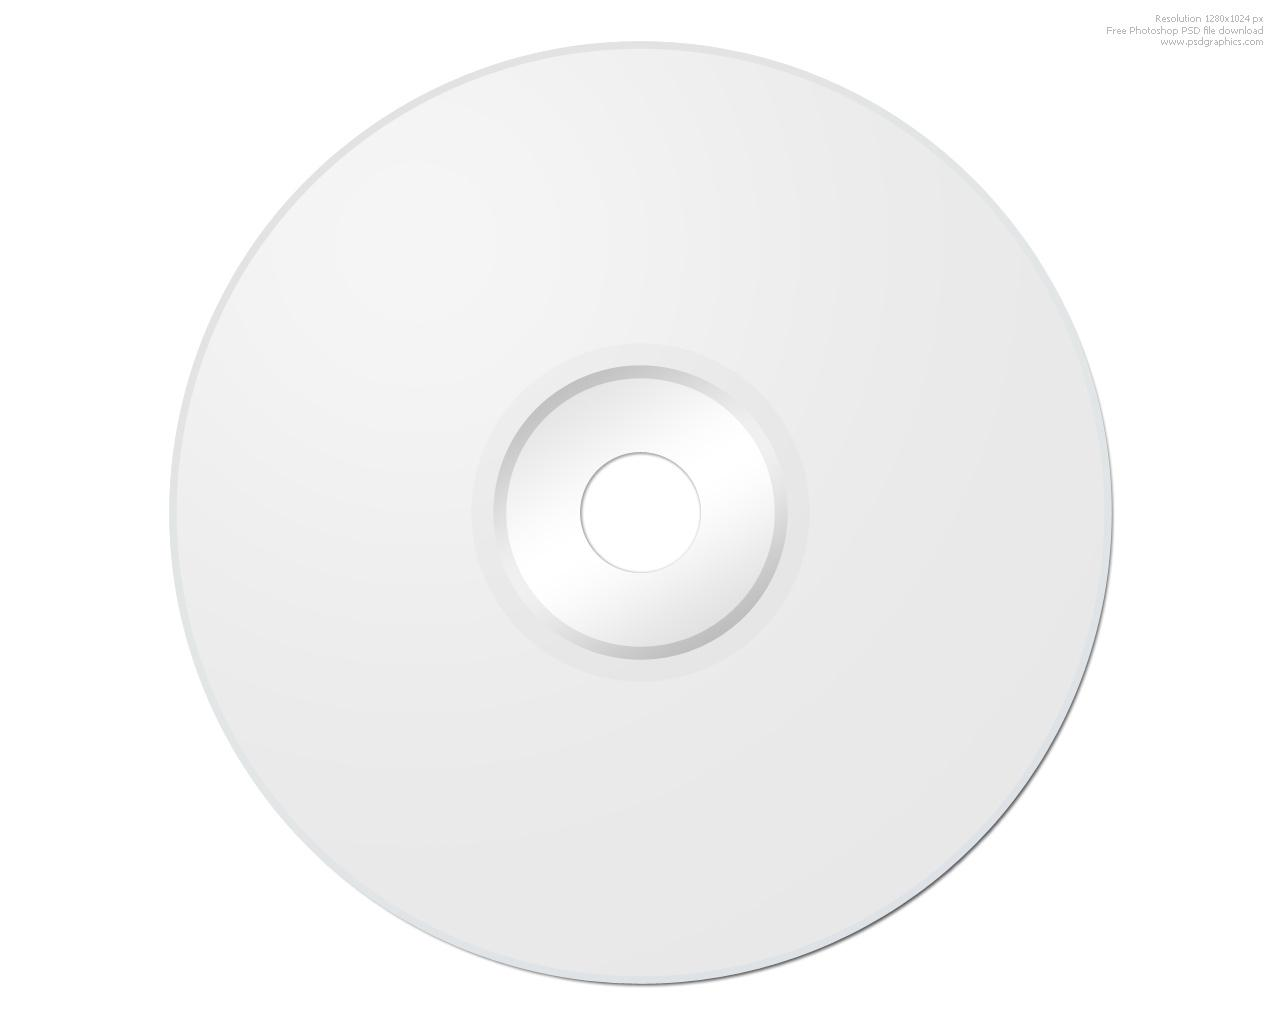 Avery Cd Label Template 5692